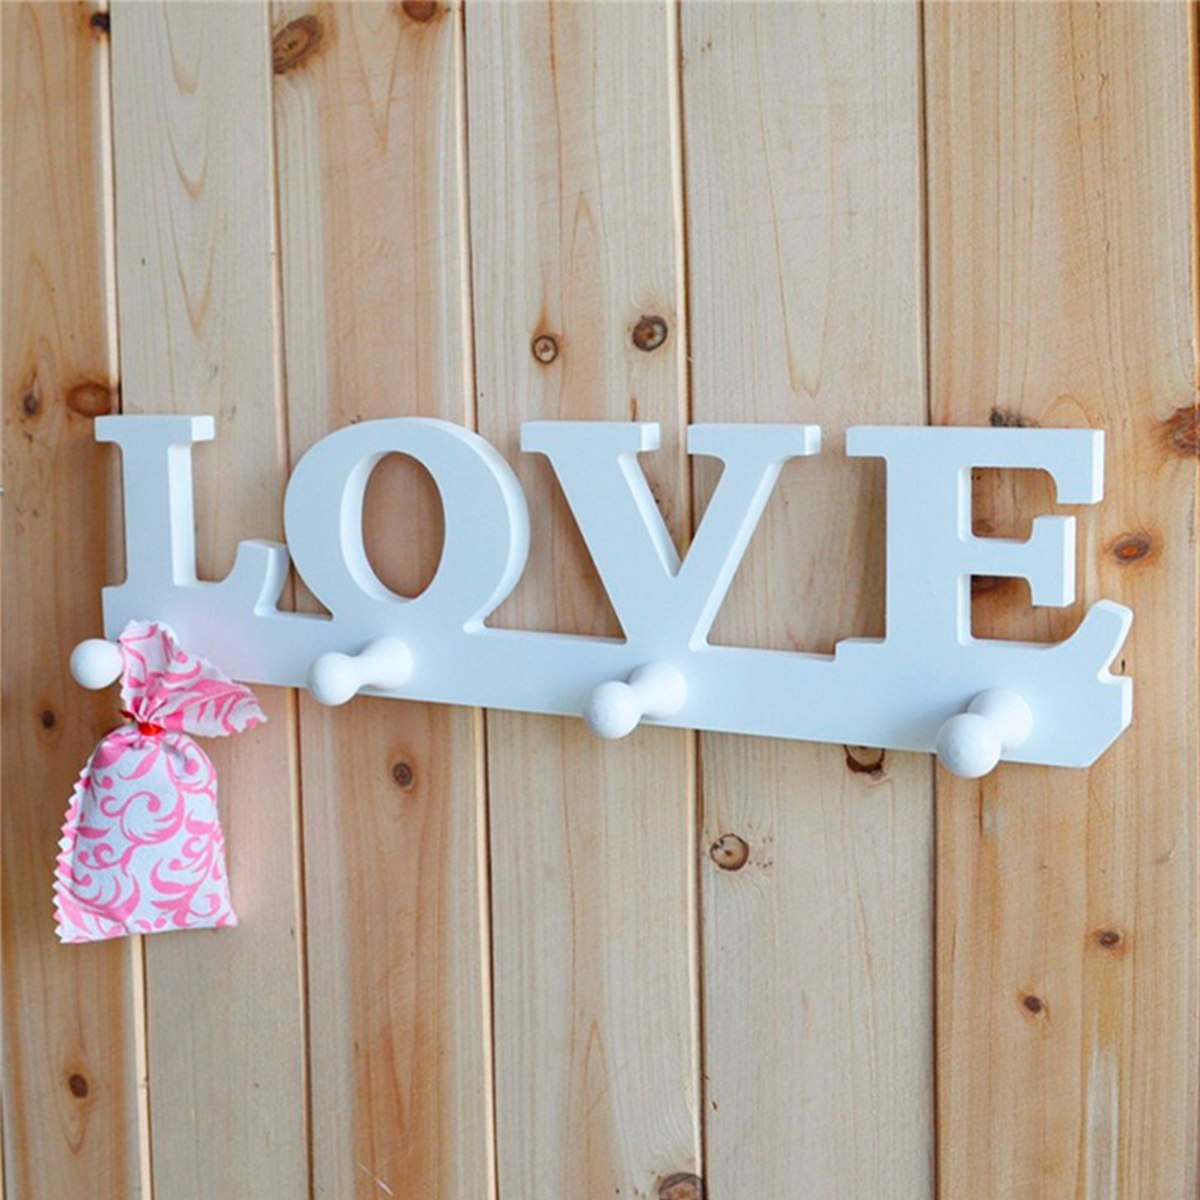 Llavero perchero porta llaves con palabra love blanco h4079 en mercado libre - Porta llaves pared ...